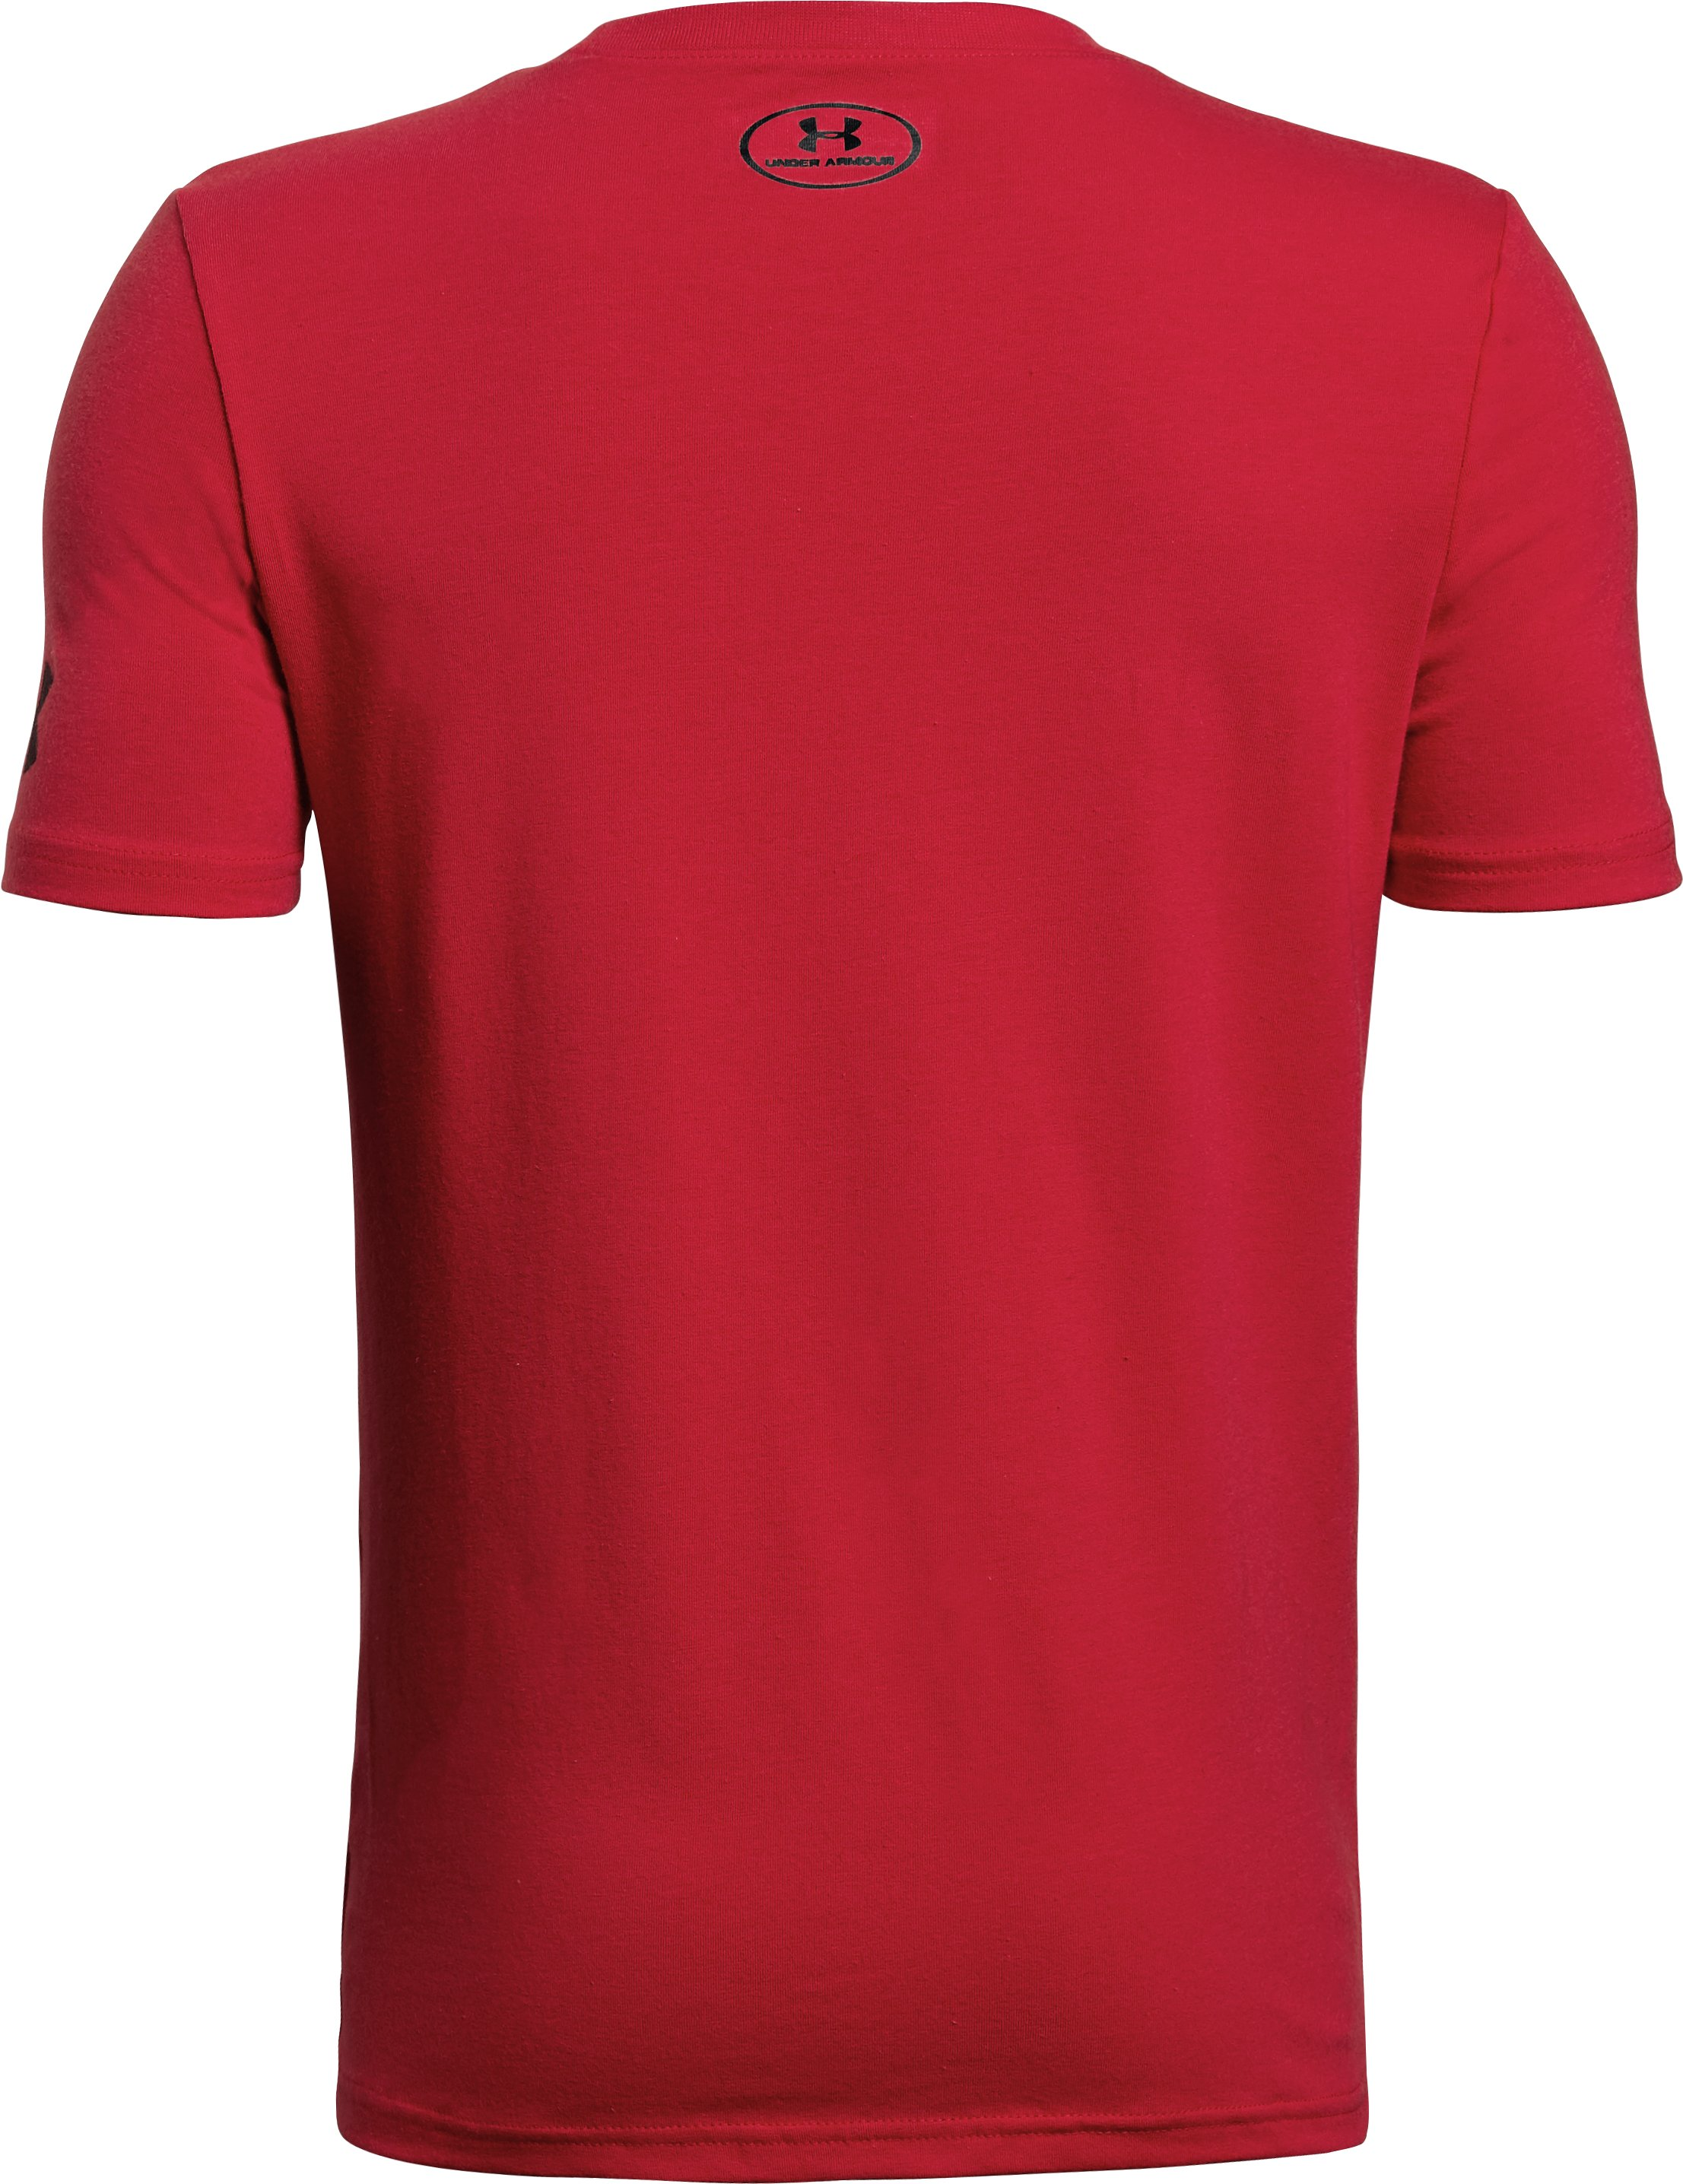 Boys' SC30 Logo T-Shirt, Red, undefined